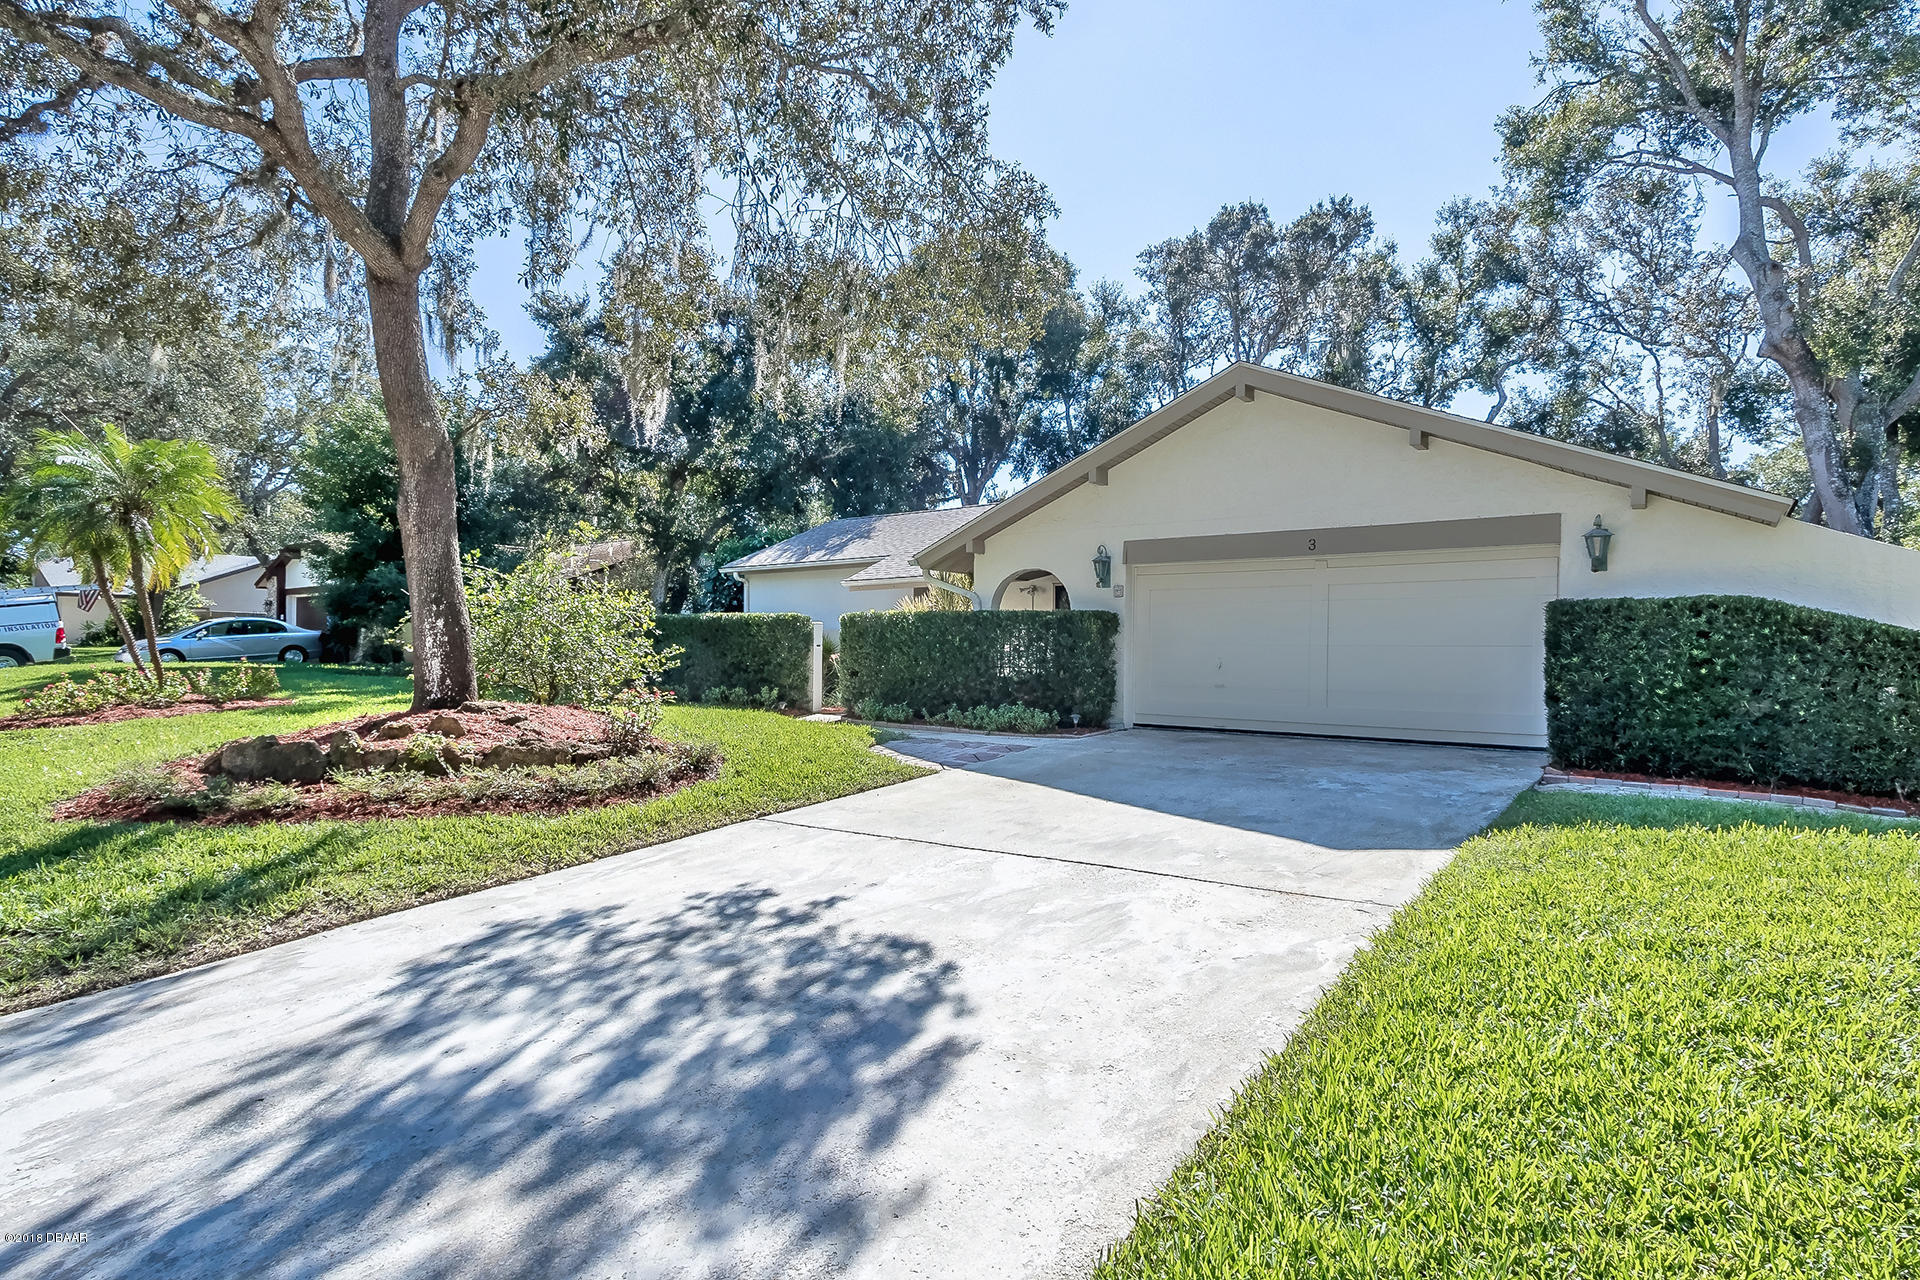 Photo of 3 Eagle Drive, Ormond Beach, FL 32174